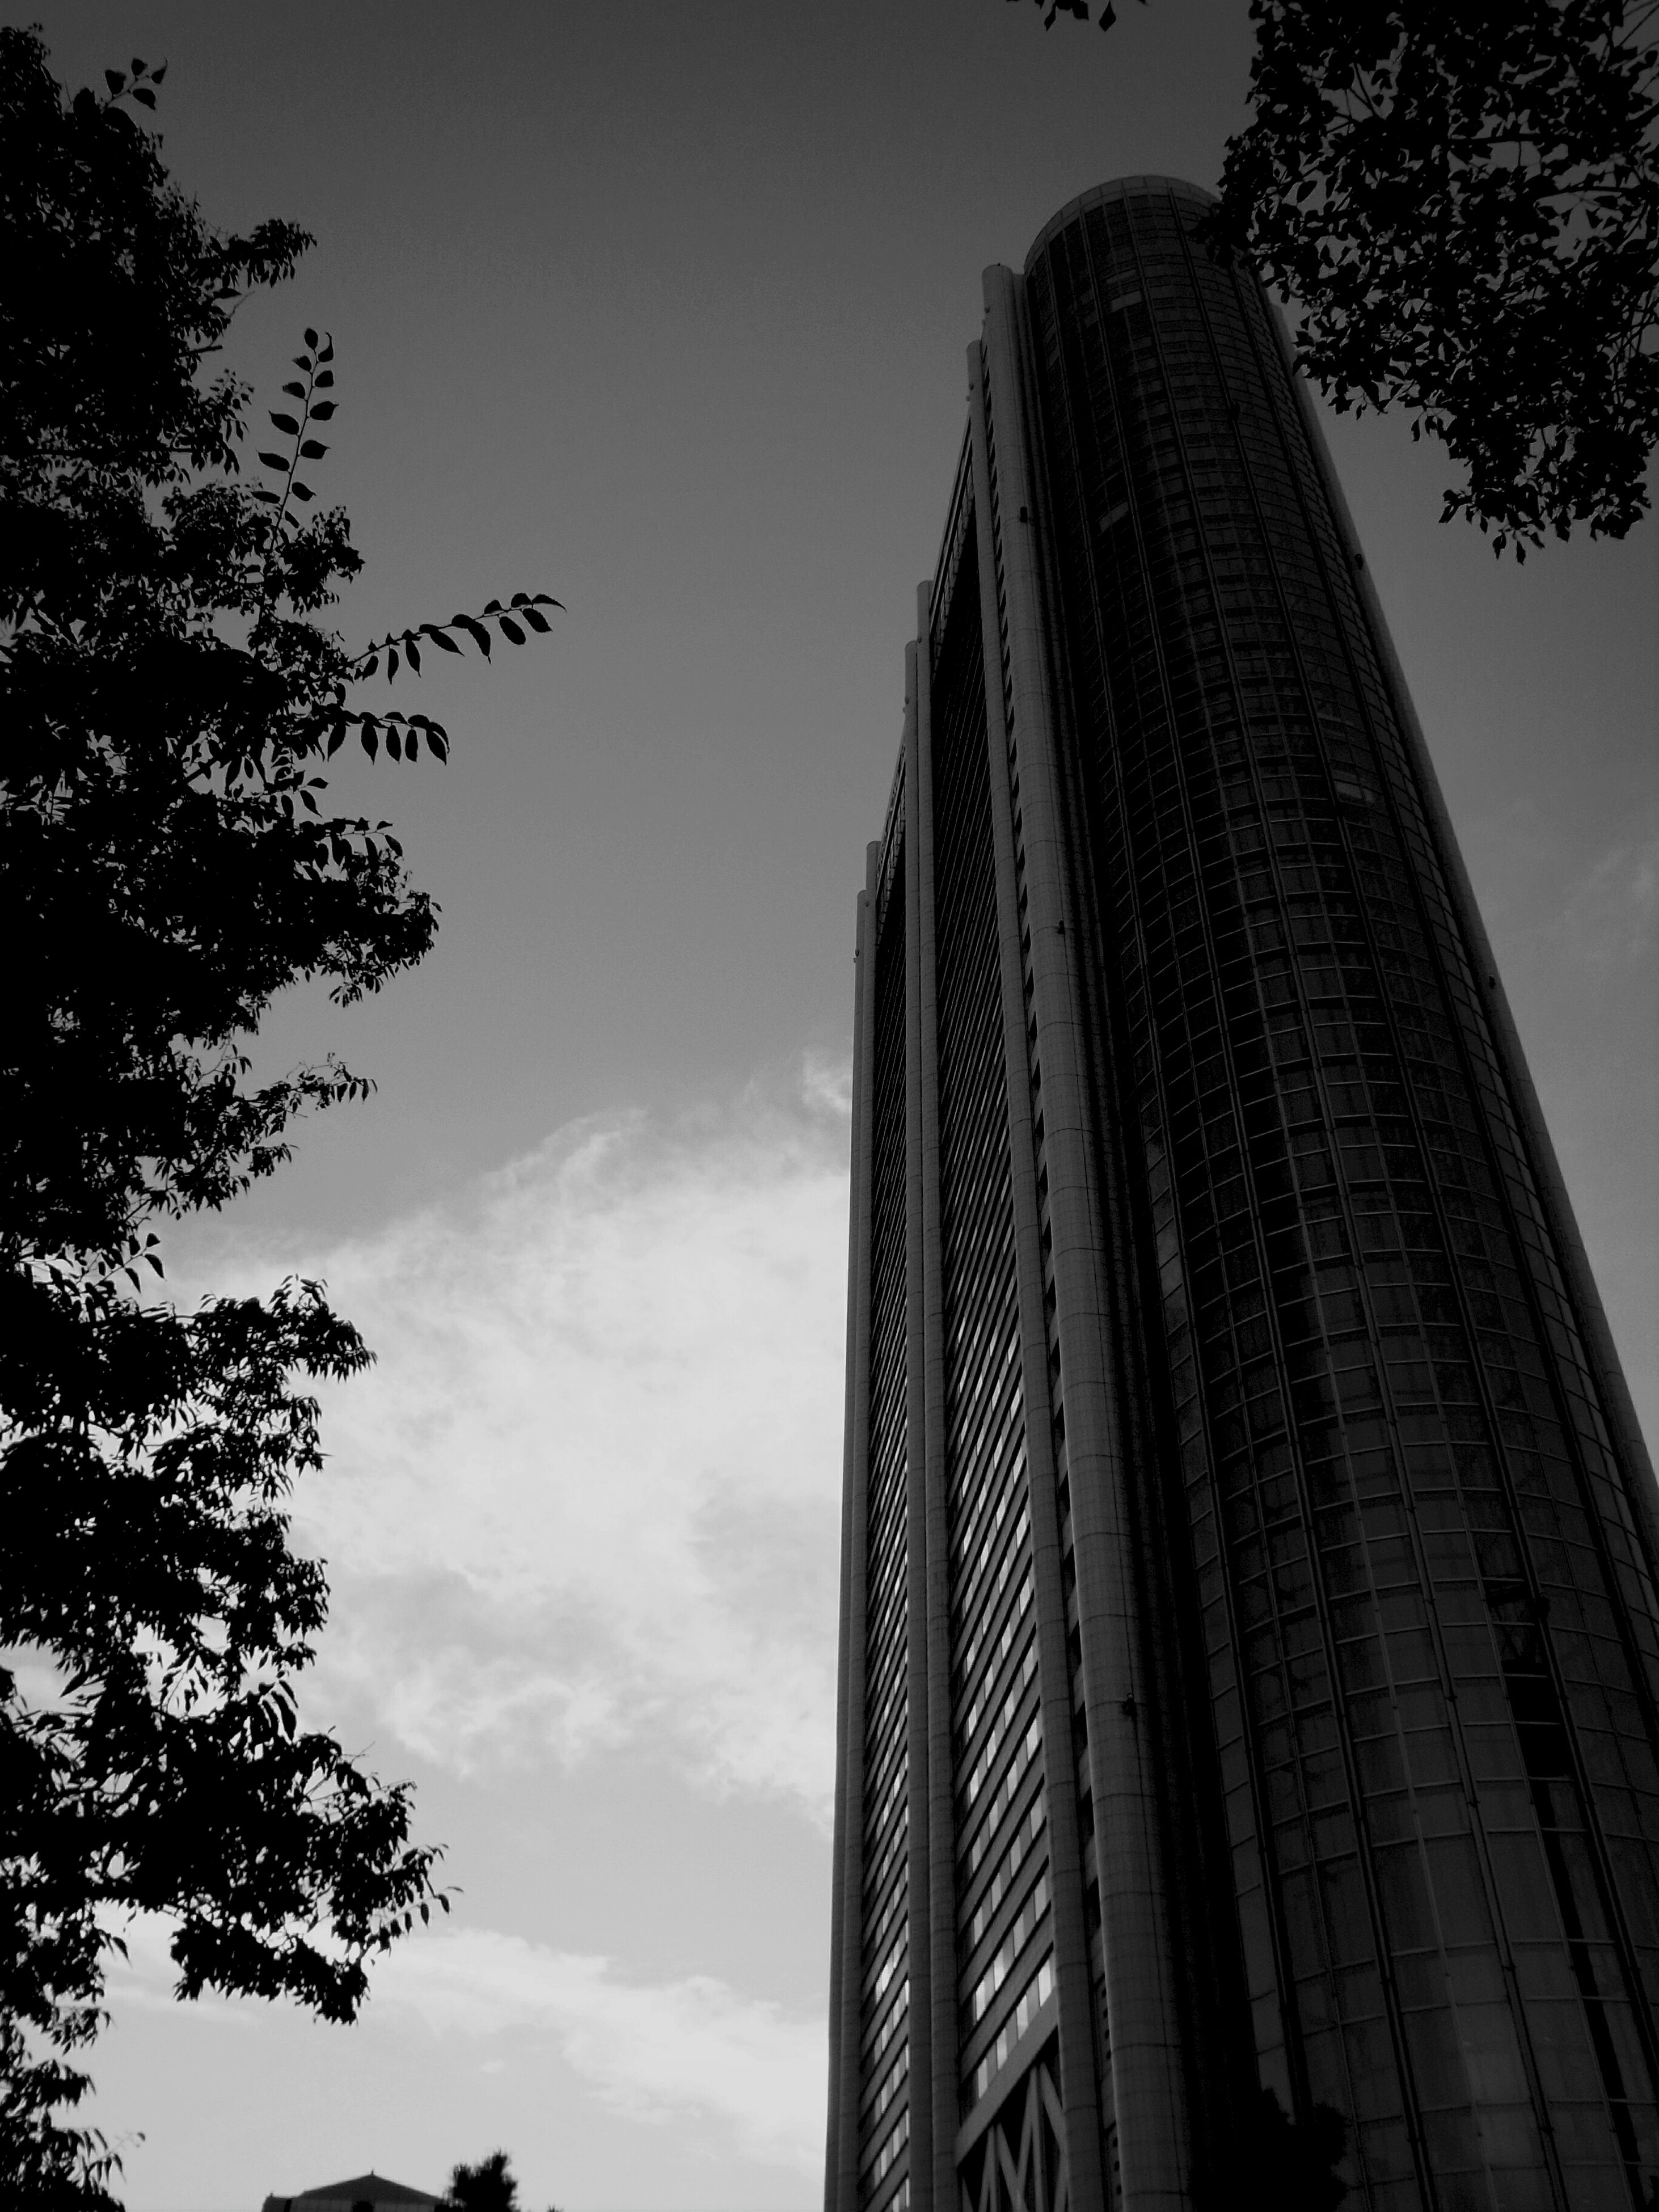 low angle view, architecture, building exterior, built structure, tree, sky, city, tall - high, skyscraper, branch, building, growth, outdoors, cloud - sky, tower, day, no people, modern, office building, cloud